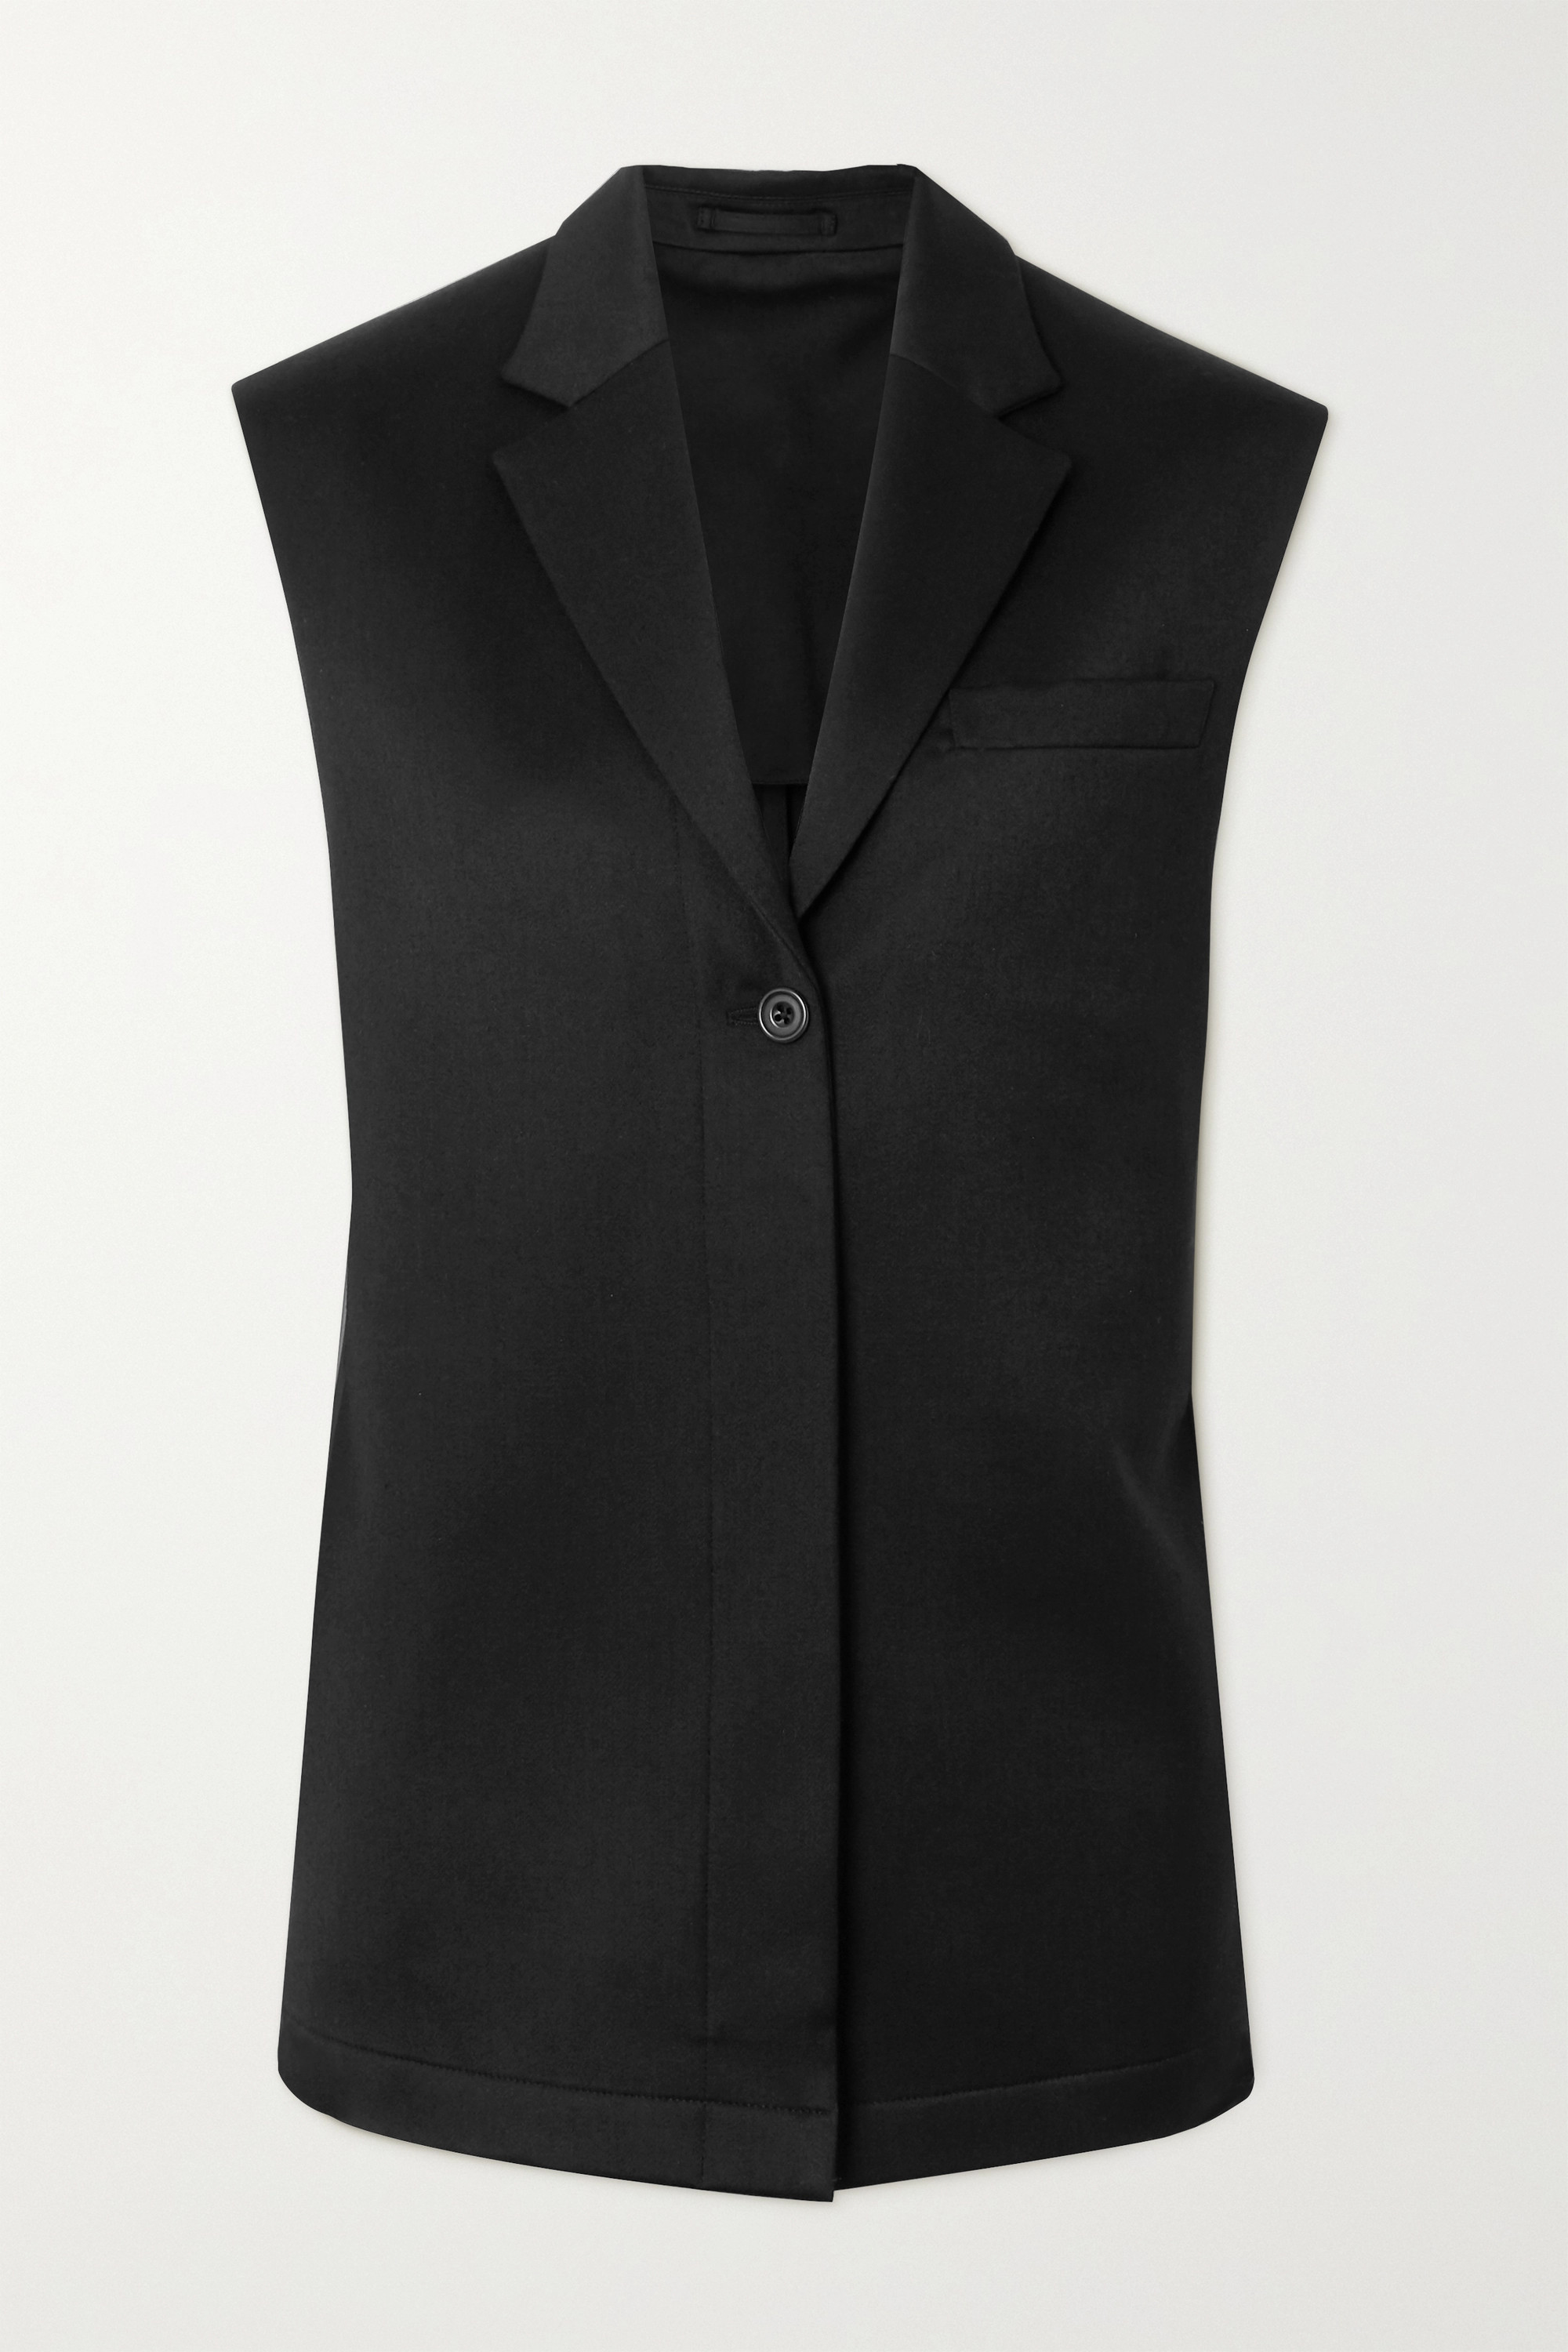 Wright Le Chapelain Wool-twill vest